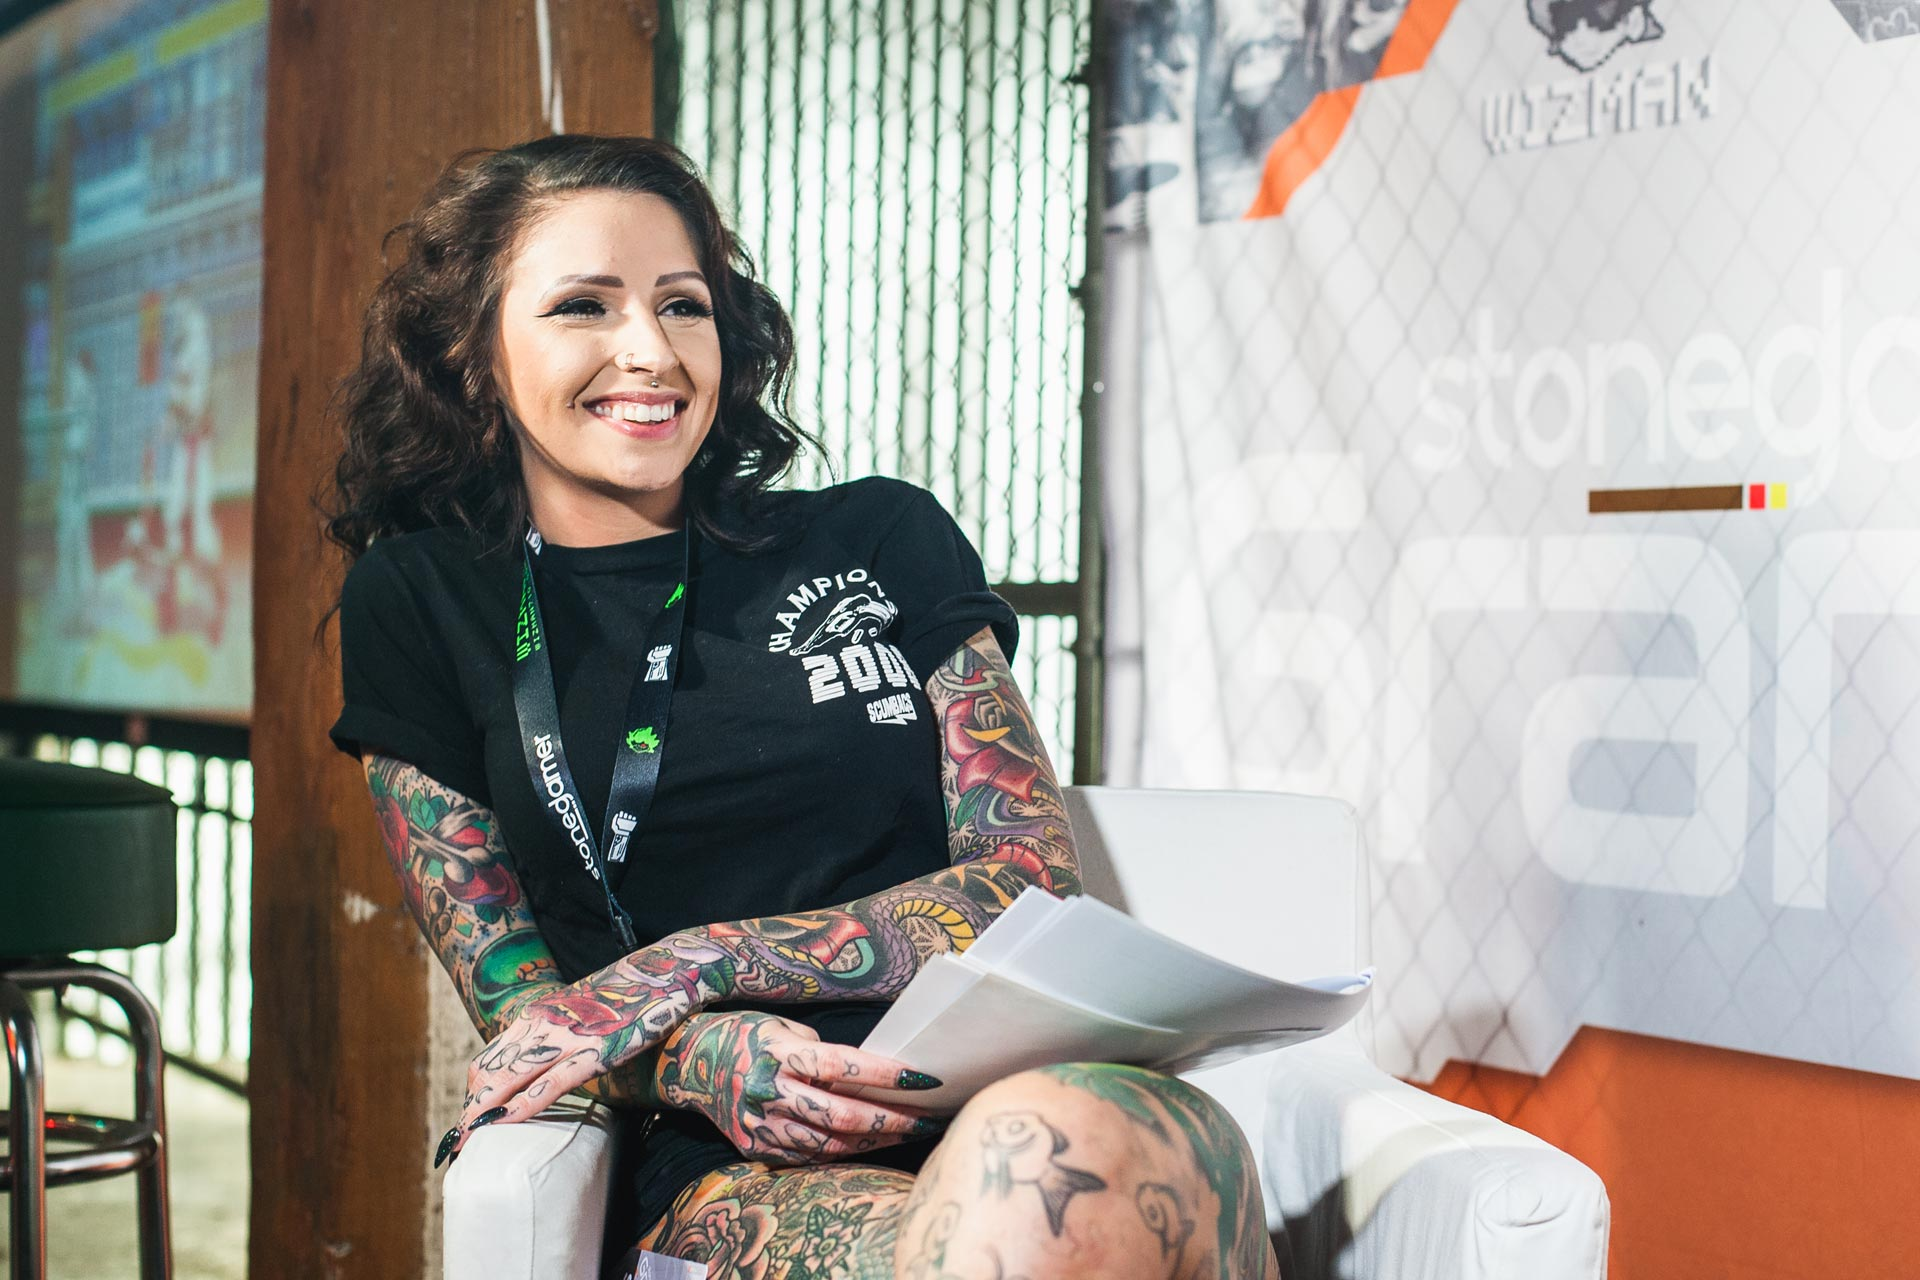 2017 SGL Grand Finale - Host Angela Mazzanti interviewing > Photo by Mitch Visquez